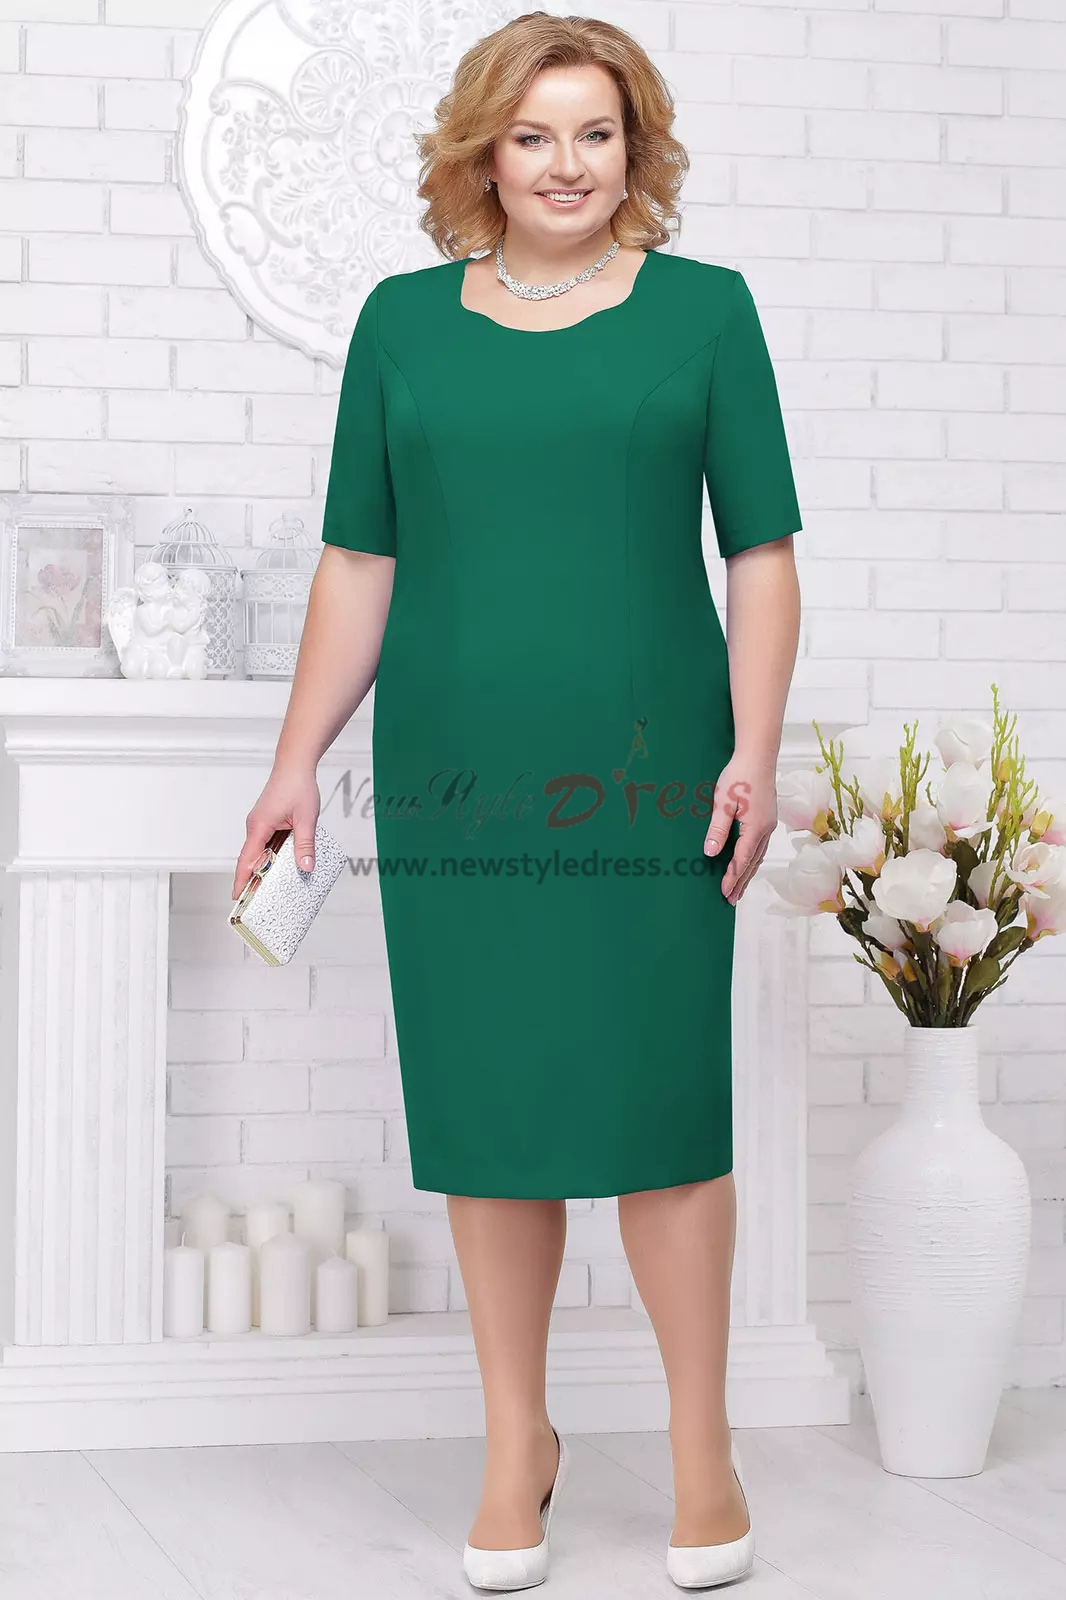 ed7cfc70bb863 Lace Overlay Dresses For Mother Of The Bride - raveitsafe